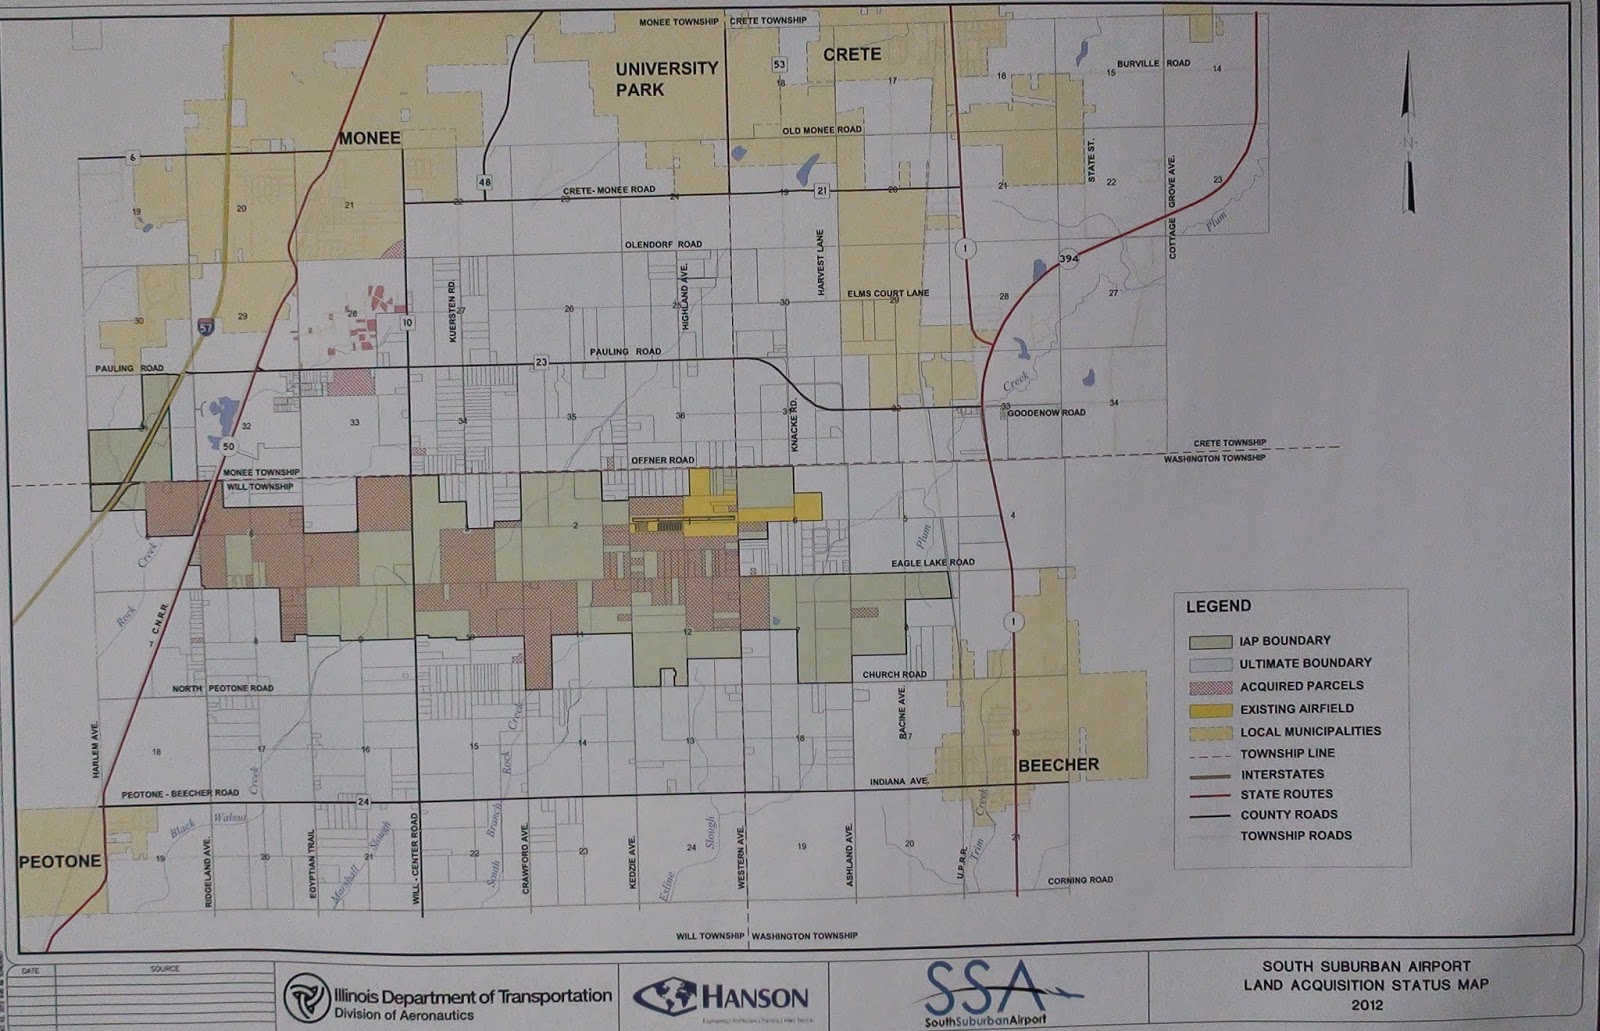 Illinois will county peotone - Illinois Department Of Transportation South Suburban Land Acquisition Status Map 2012